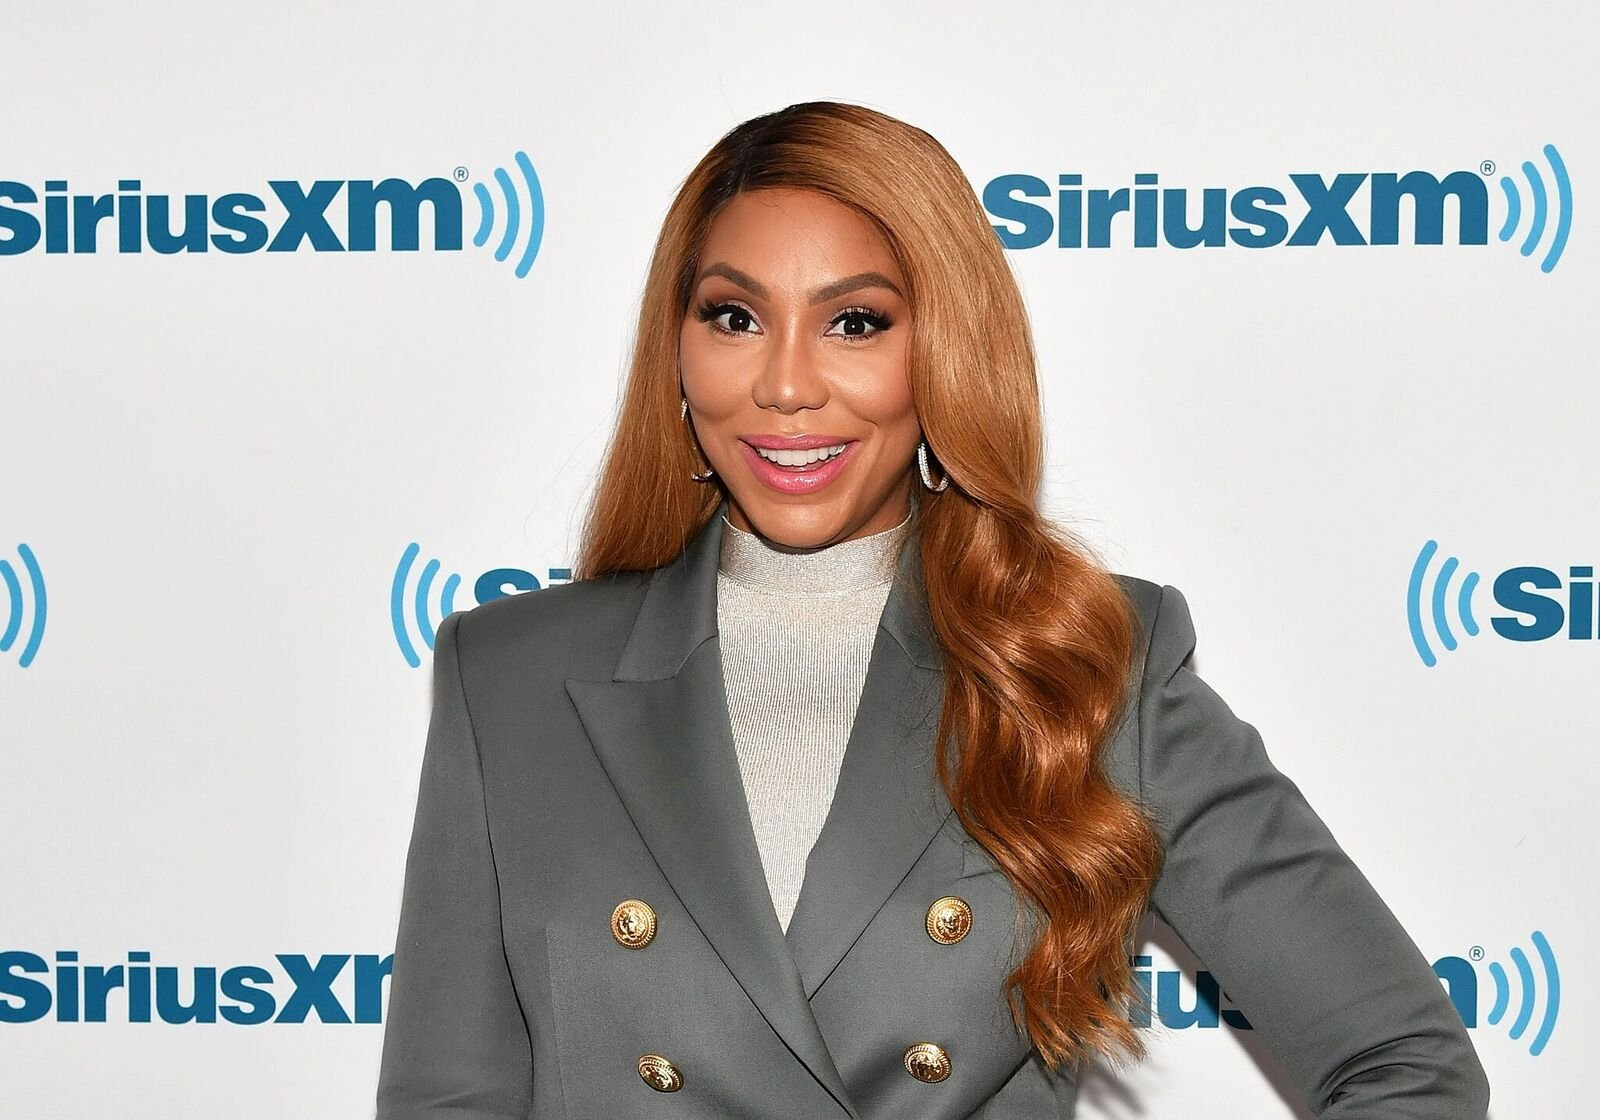 Singer/TV personality Tamar Braxton celebrates her birthday and Saint Patrick's Day at SiriusXM Studios on March 17, 2017 | Photo: Getty Images